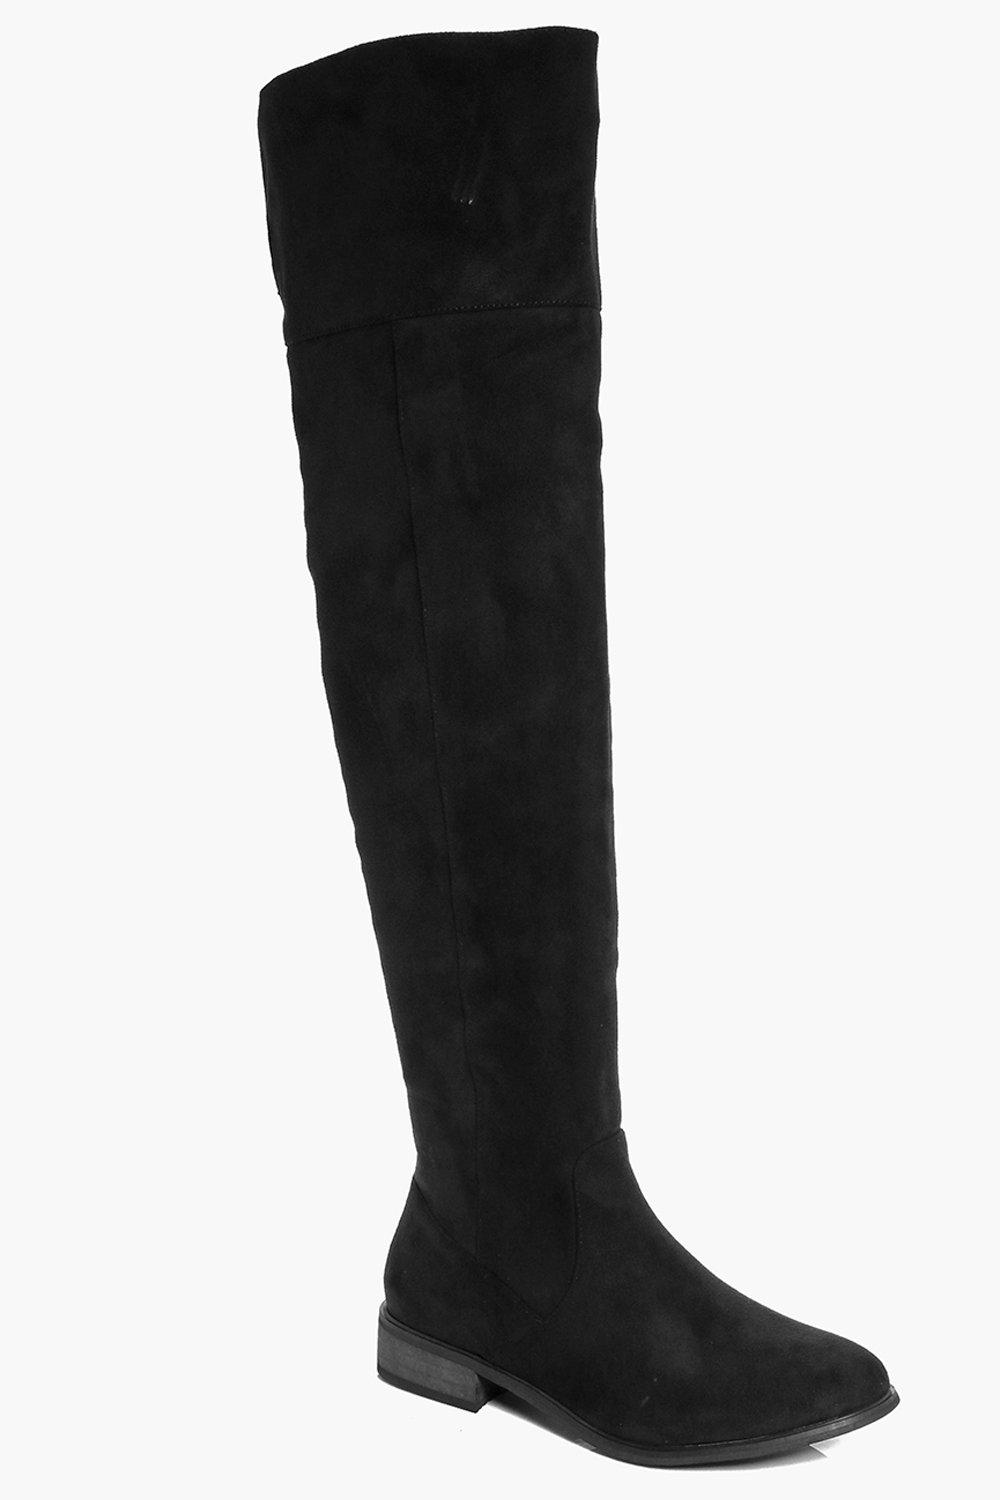 Annabelle Over The Knee Flat Boot at boohoo.com